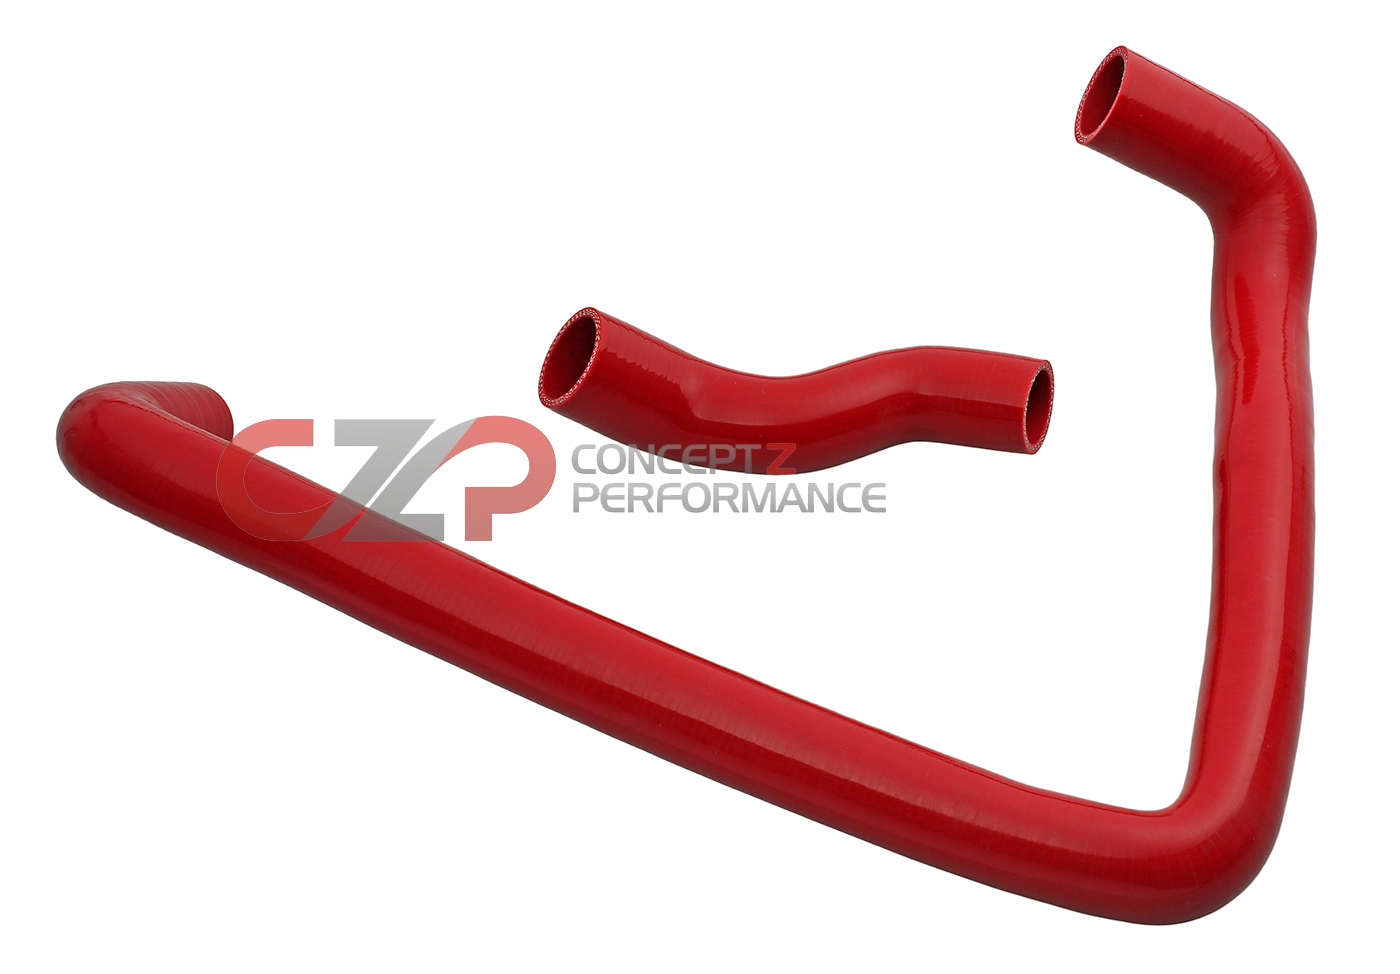 CZP Silicone Radiator Coolant Hoses, Upper and Lower - Nissan 300ZX Z32